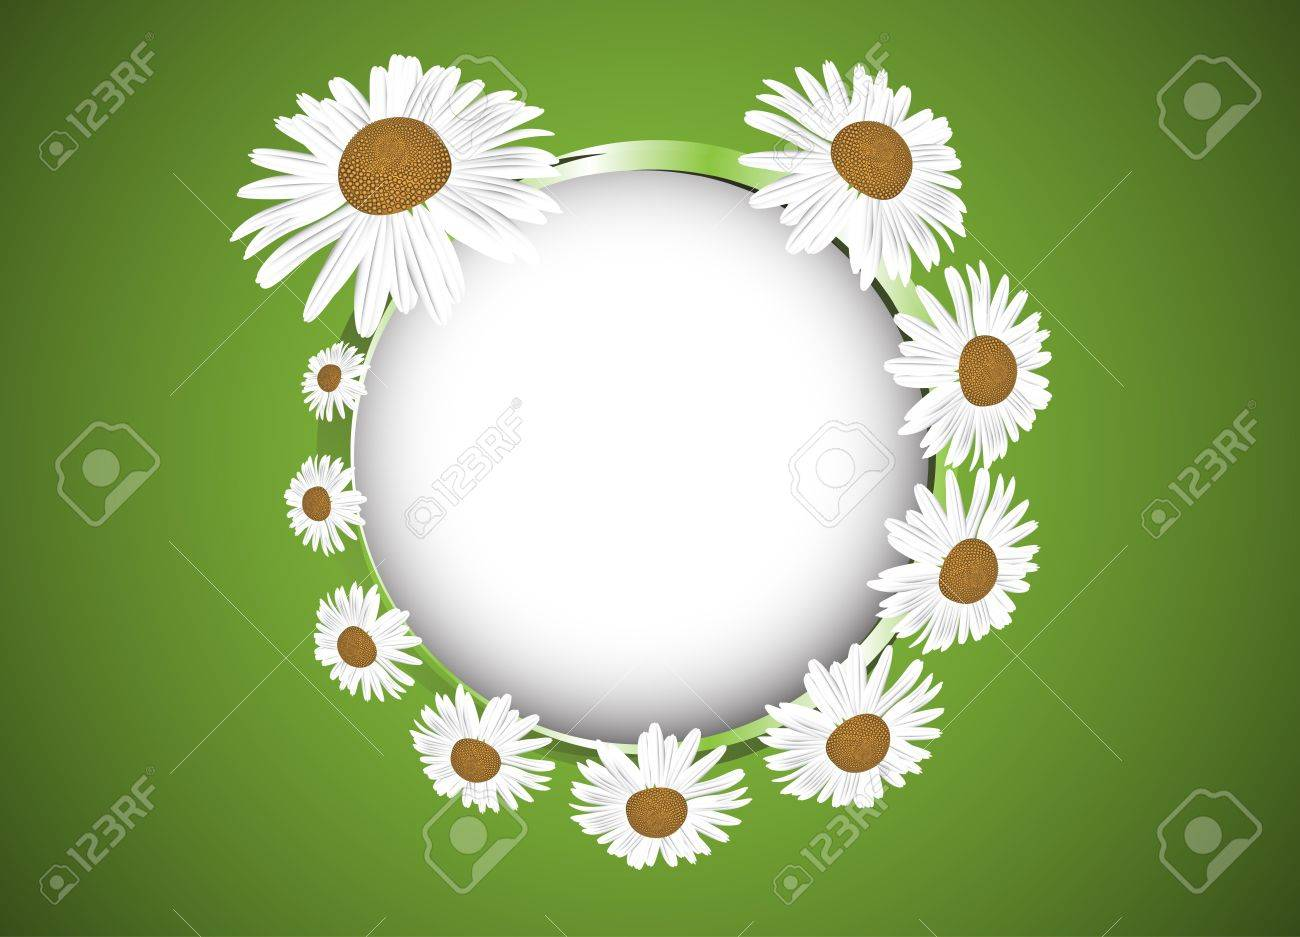 Background with daisies flowers clip art royalty free cliparts background with daisies flowers clip art stock vector 14012533 izmirmasajfo Gallery